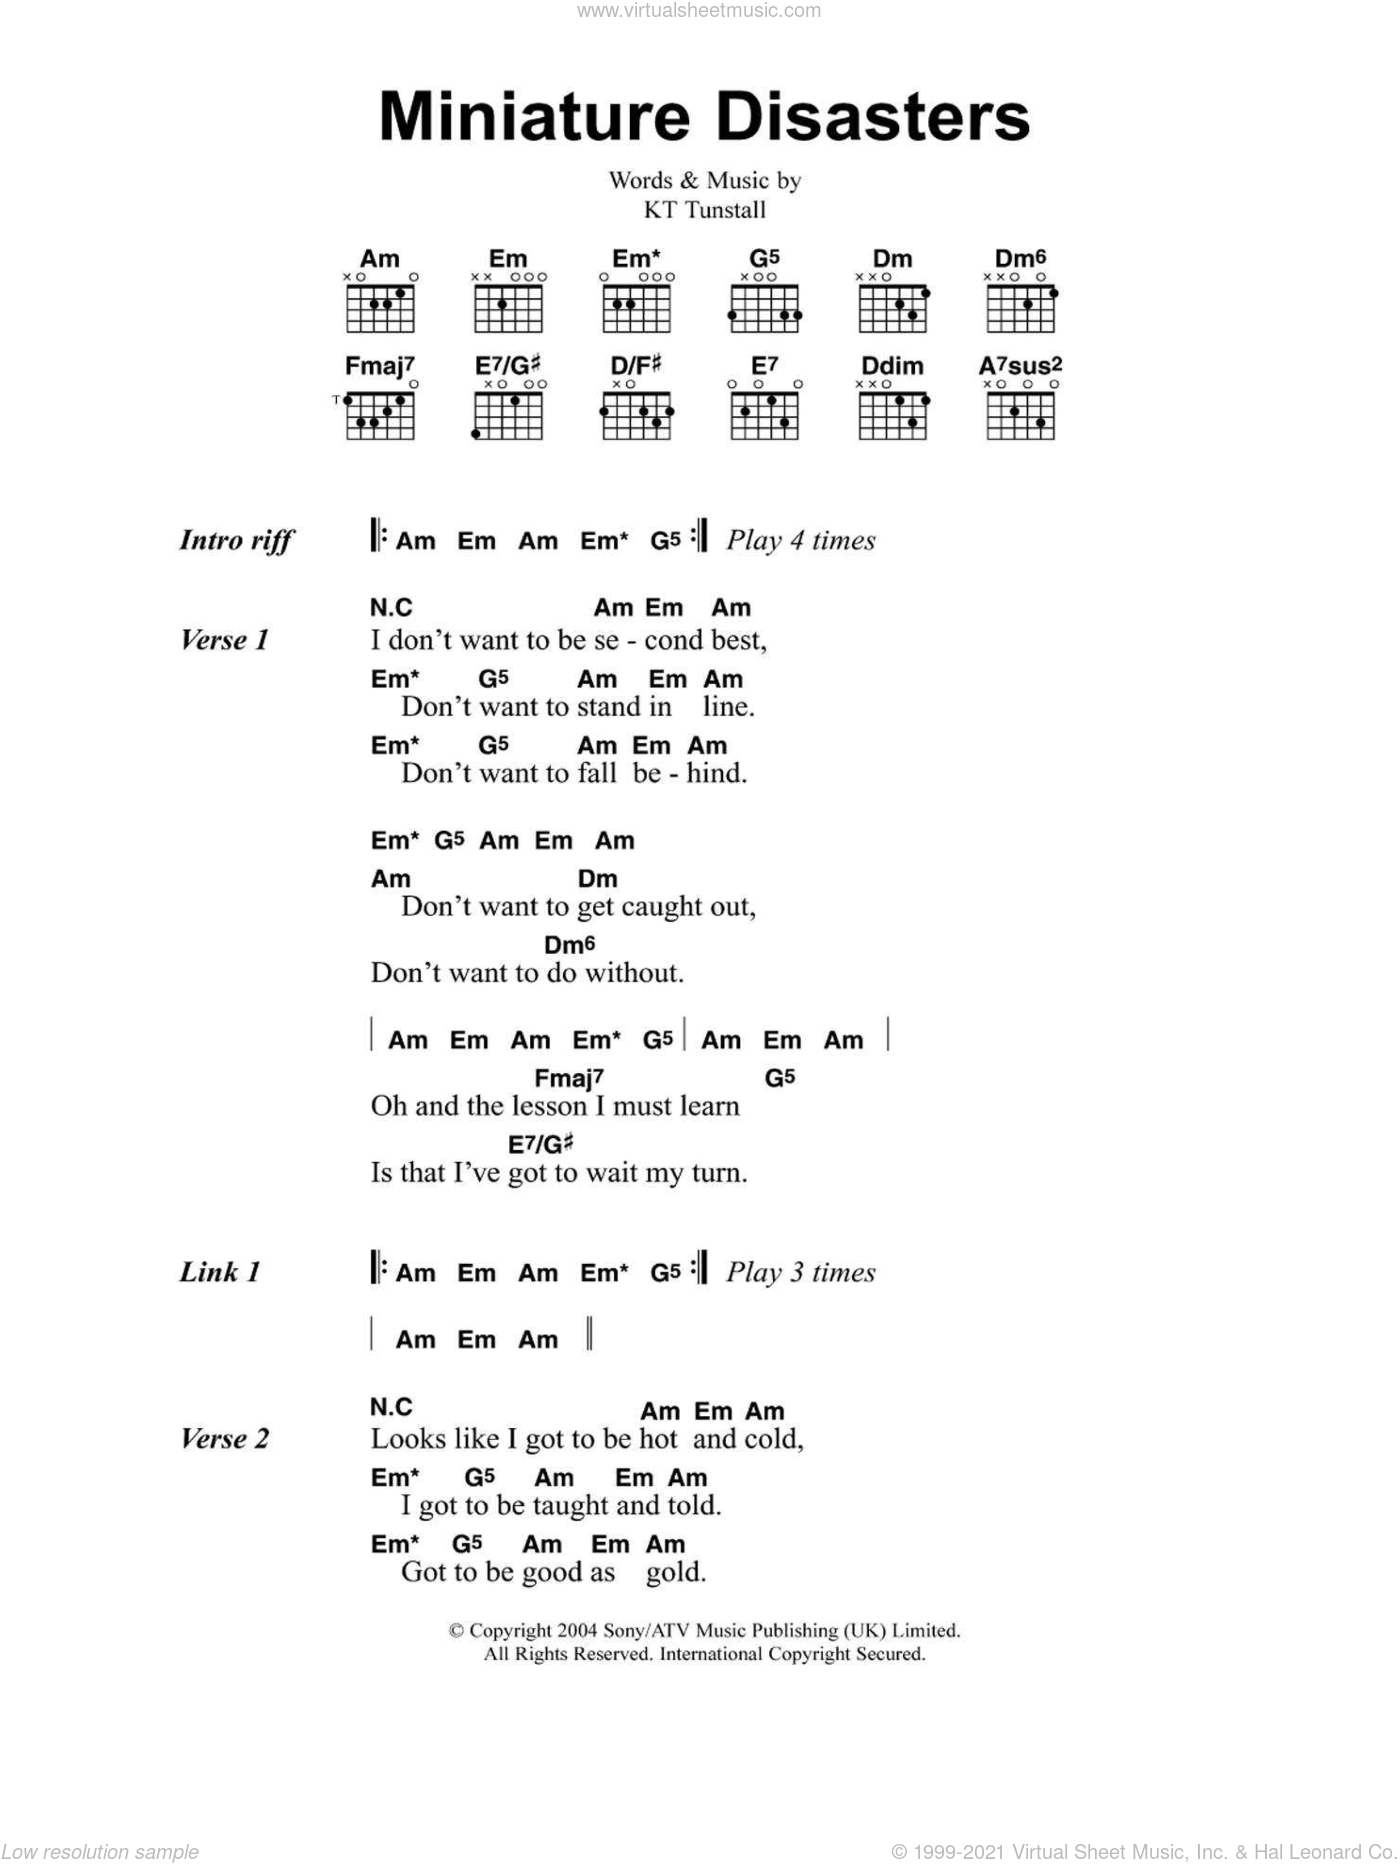 Miniature Disasters sheet music for guitar (chords) by KT Tunstall. Score Image Preview.